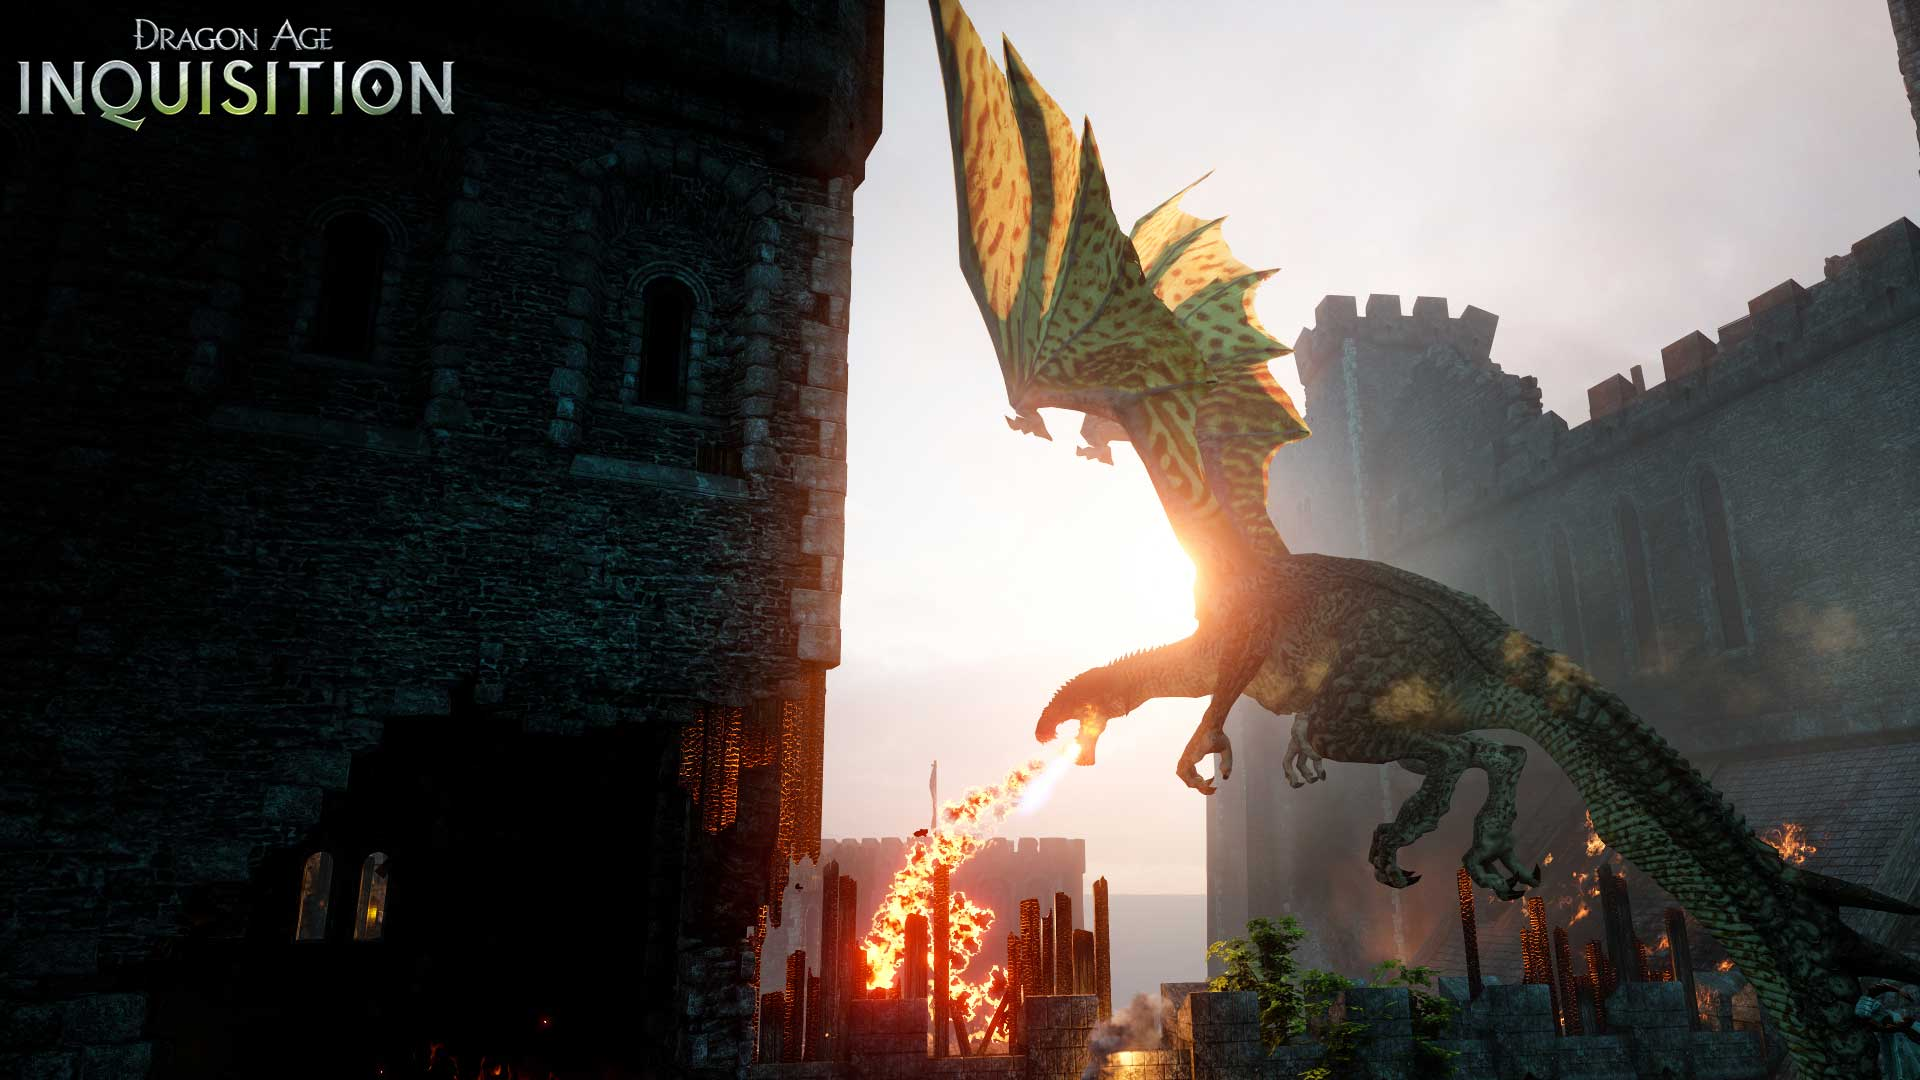 Dragon Age: Inquisition Dragonslayer DLC Announced